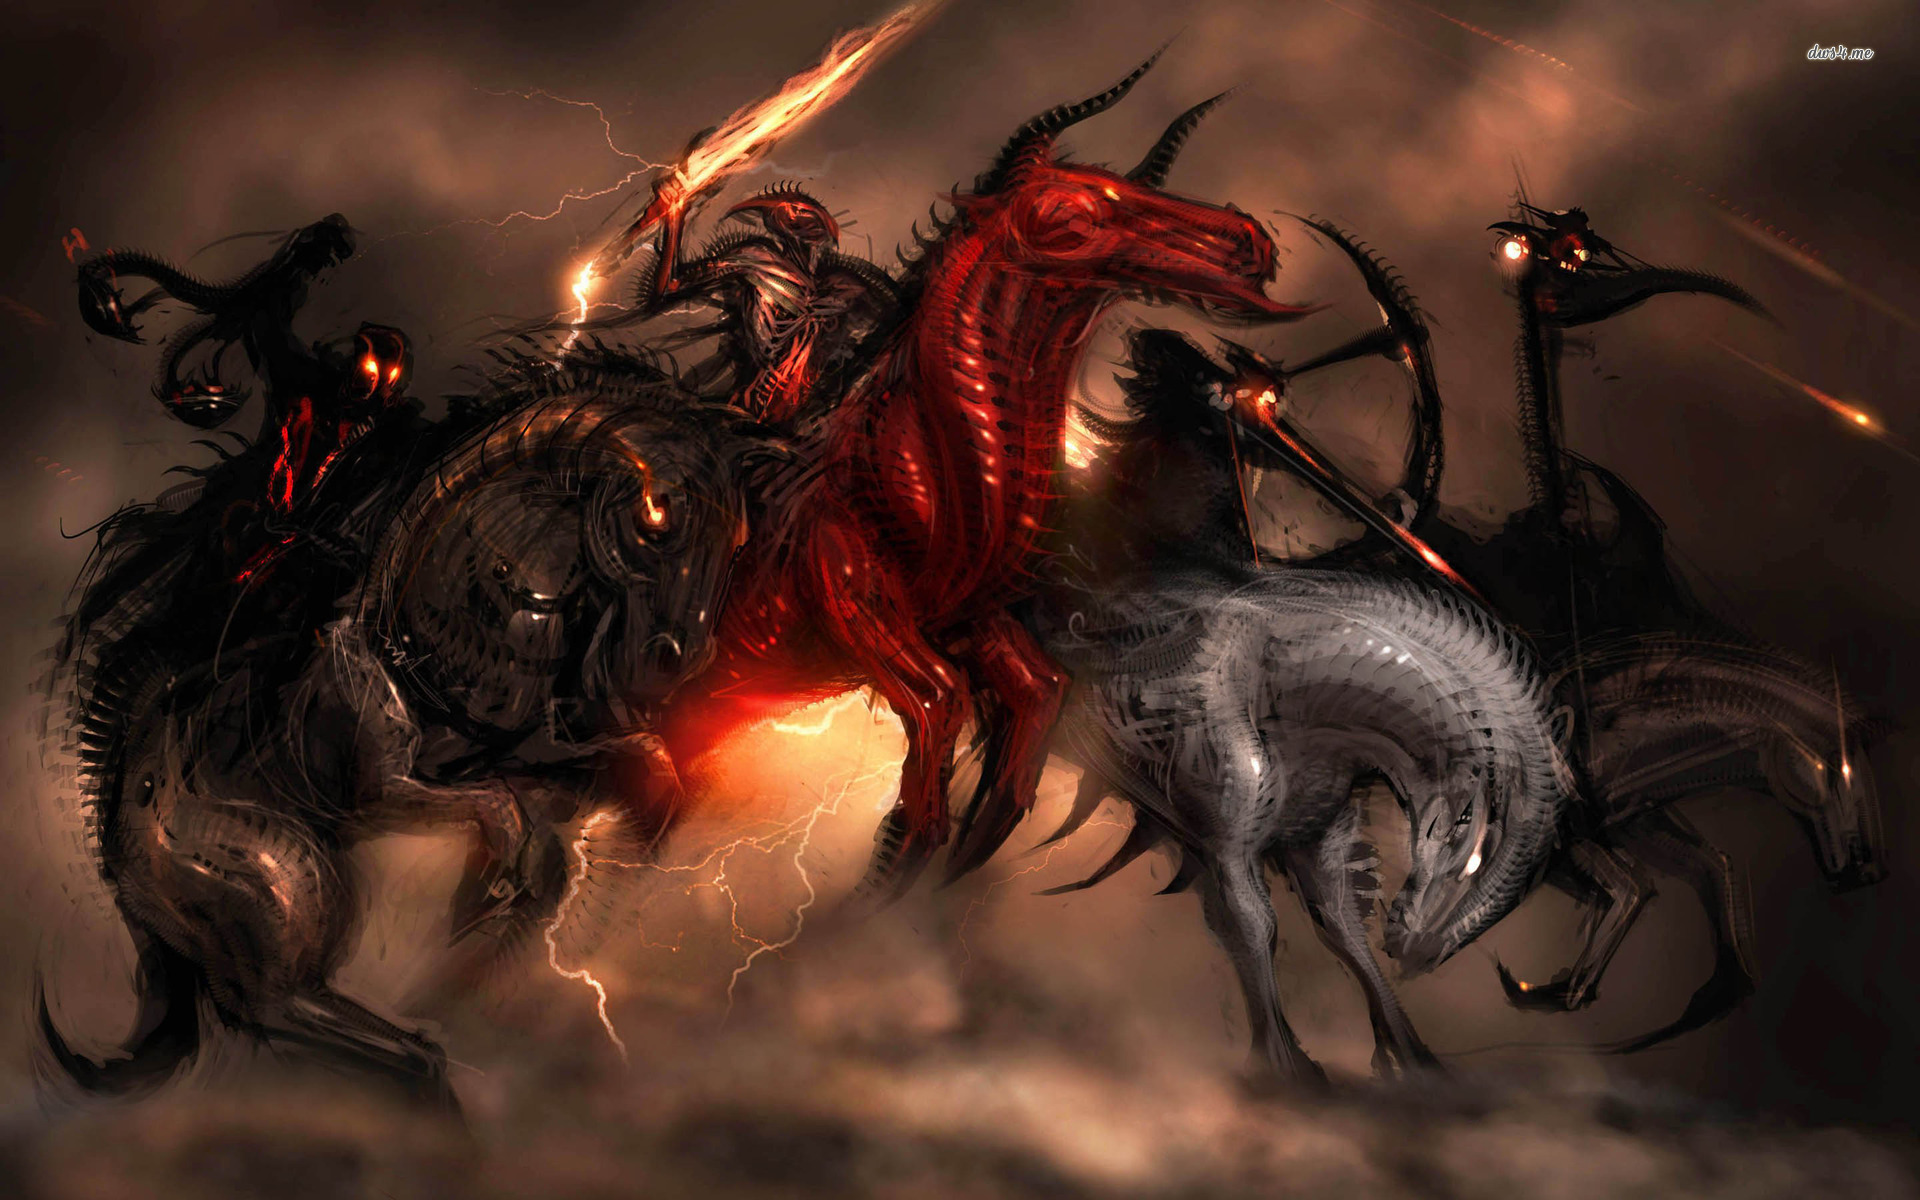 Four Horsemen of the Apocalypse wallpaper   Fantasy wallpapers 1920x1200